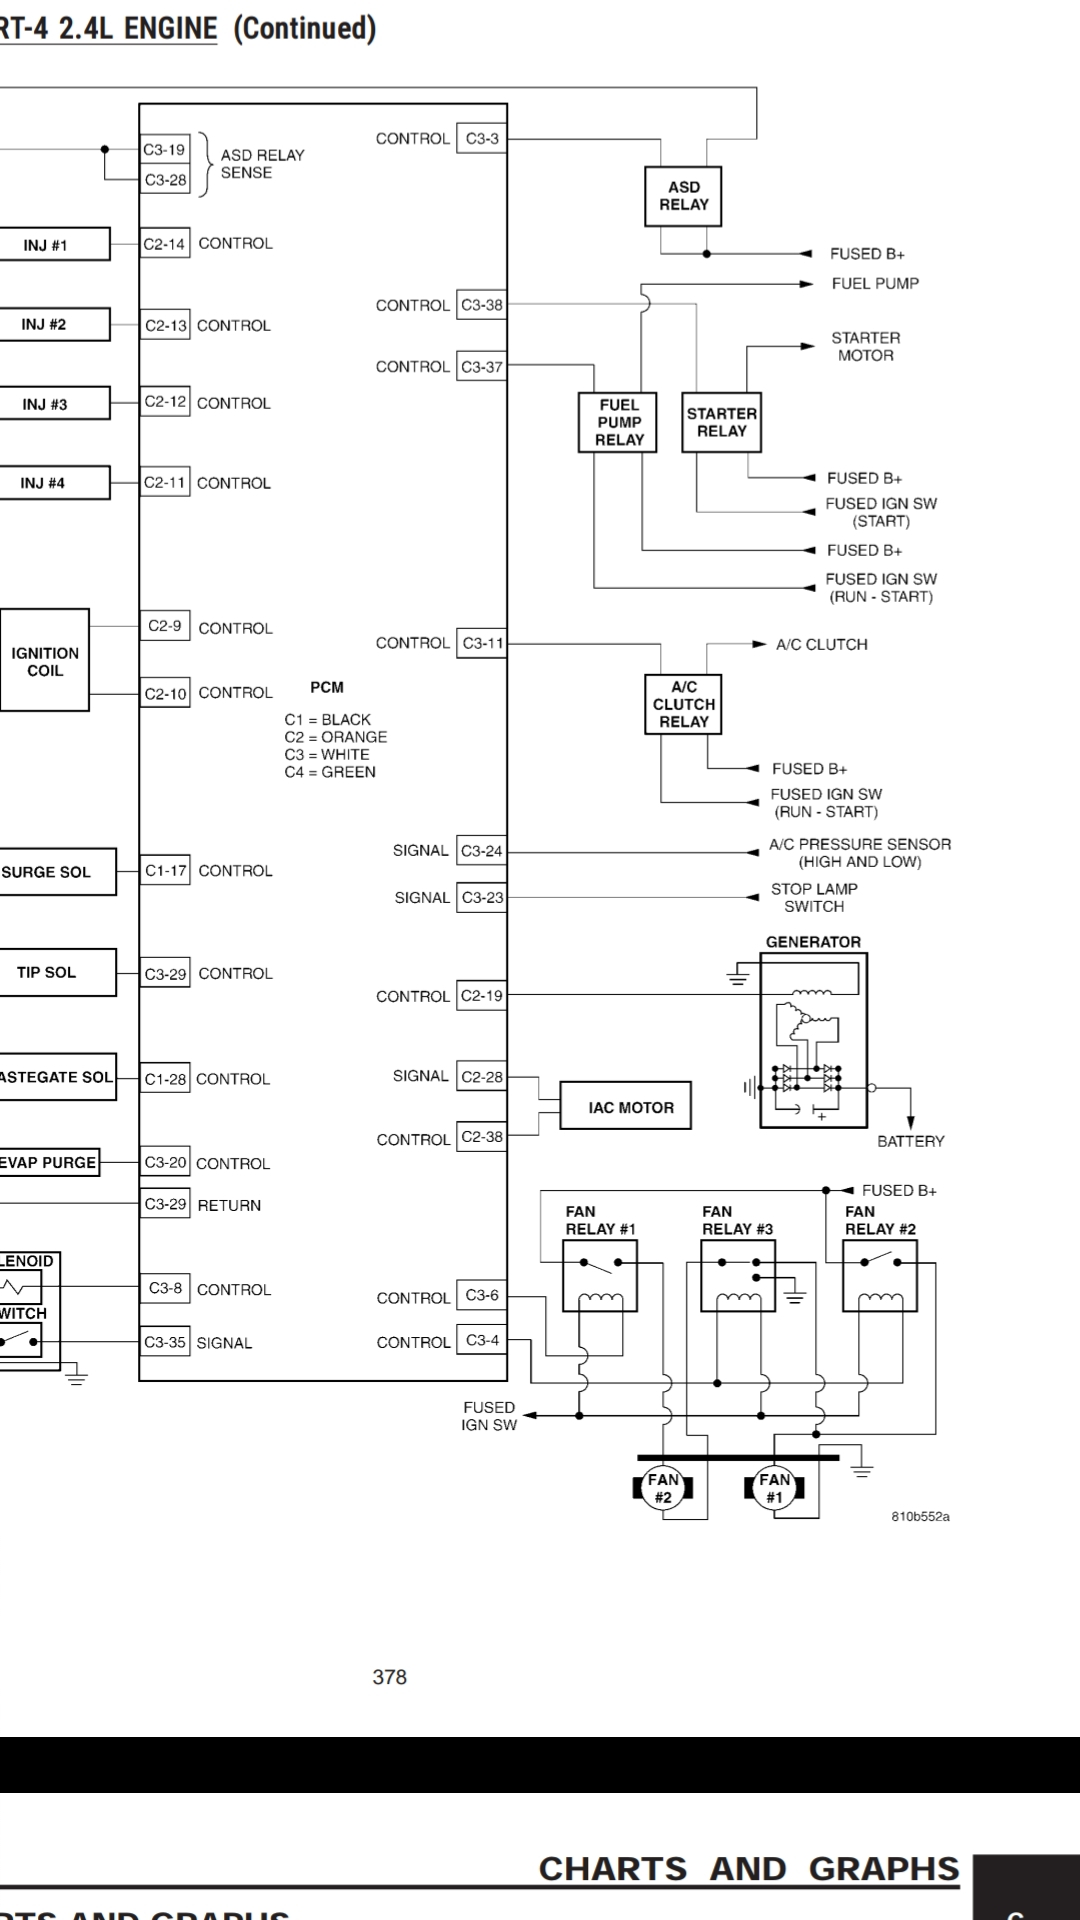 WRG-5461] Iac Wiring Diagram on iac connector diagram, iac sensor, iac parts diagram,